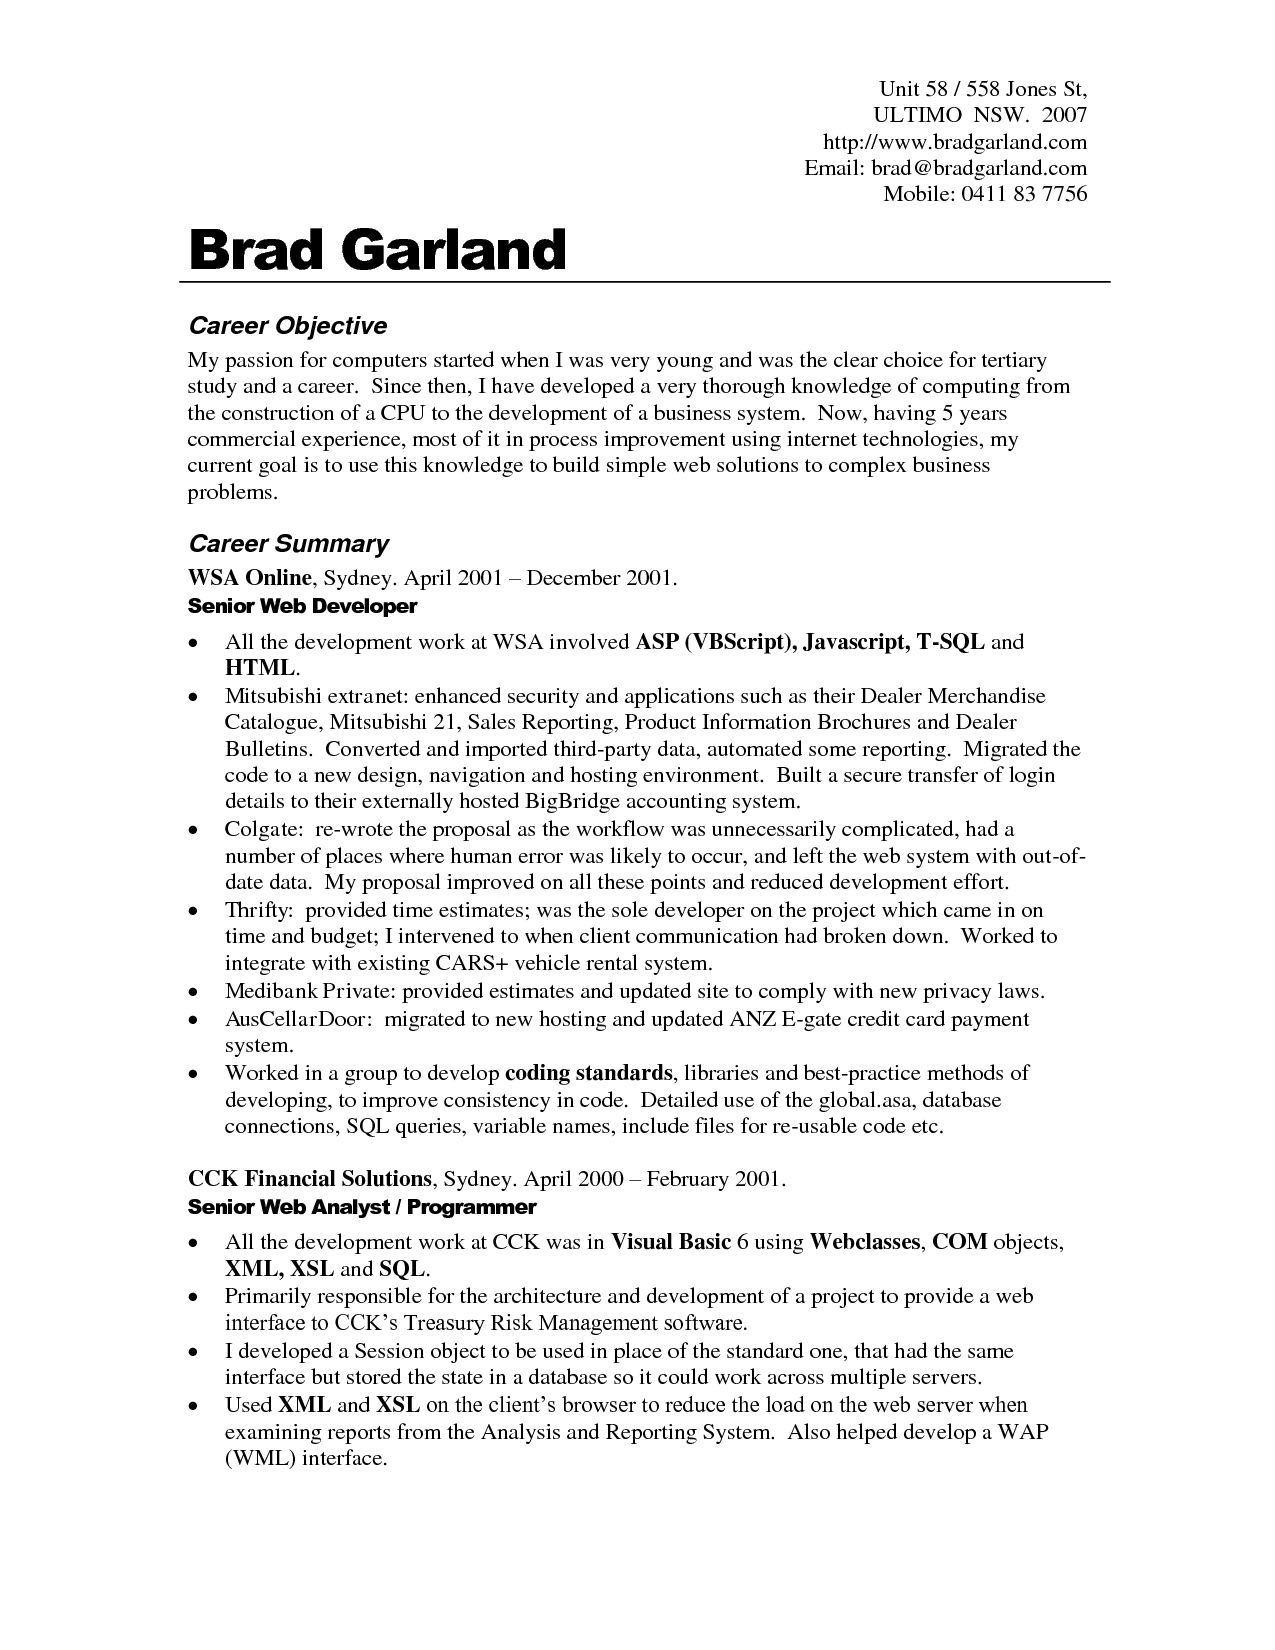 Objective On Resume Sample Resume Action Verbs For Lawyers Formatting Back Post